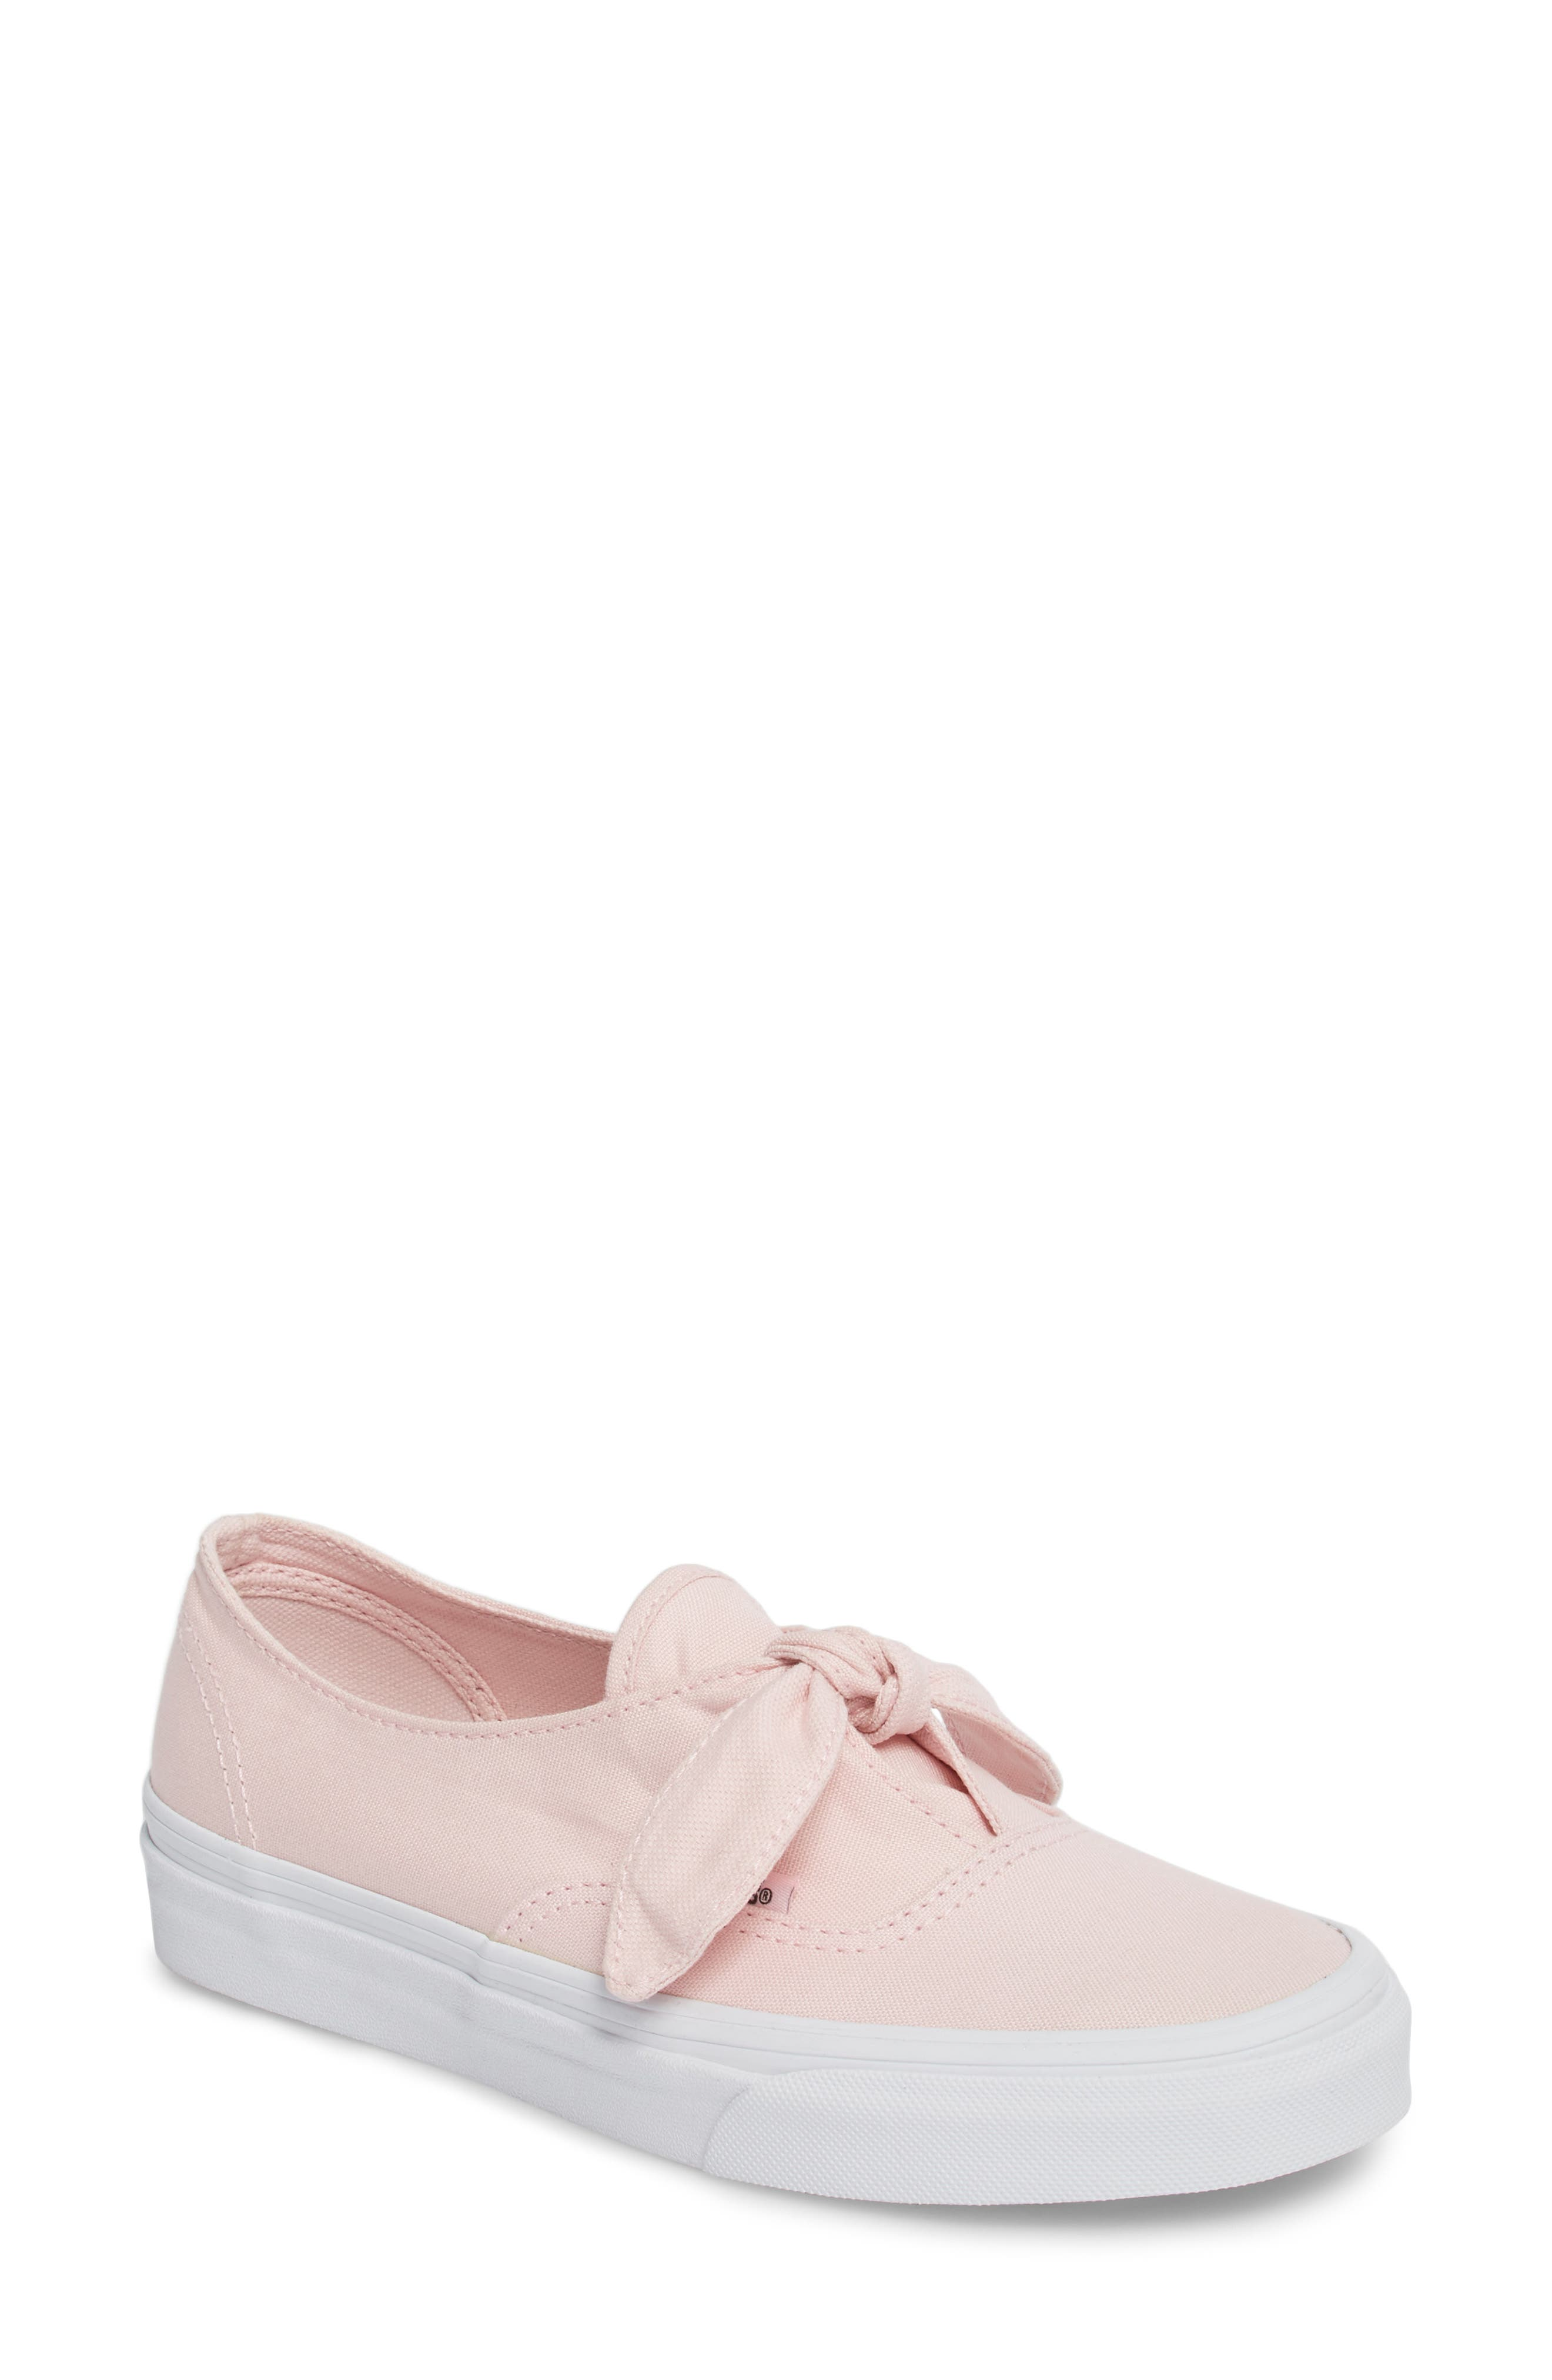 UA Authentic Knotted Slip-On Sneaker,                         Main,                         color, Chalk Pink/ True White